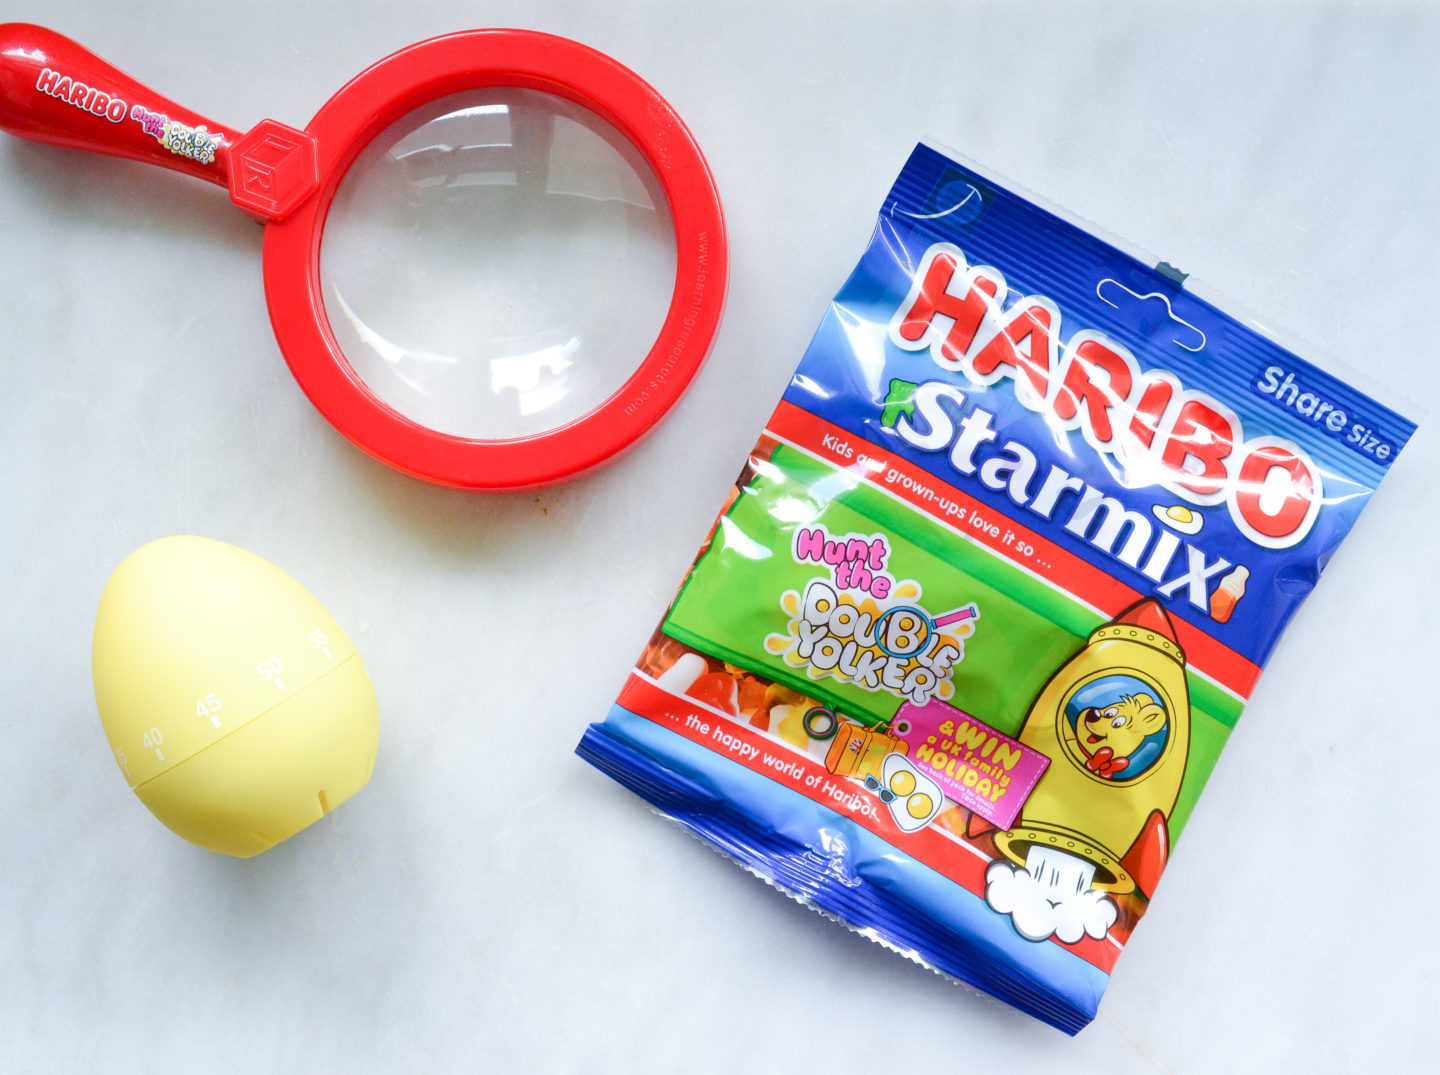 Haribo double yolker competition